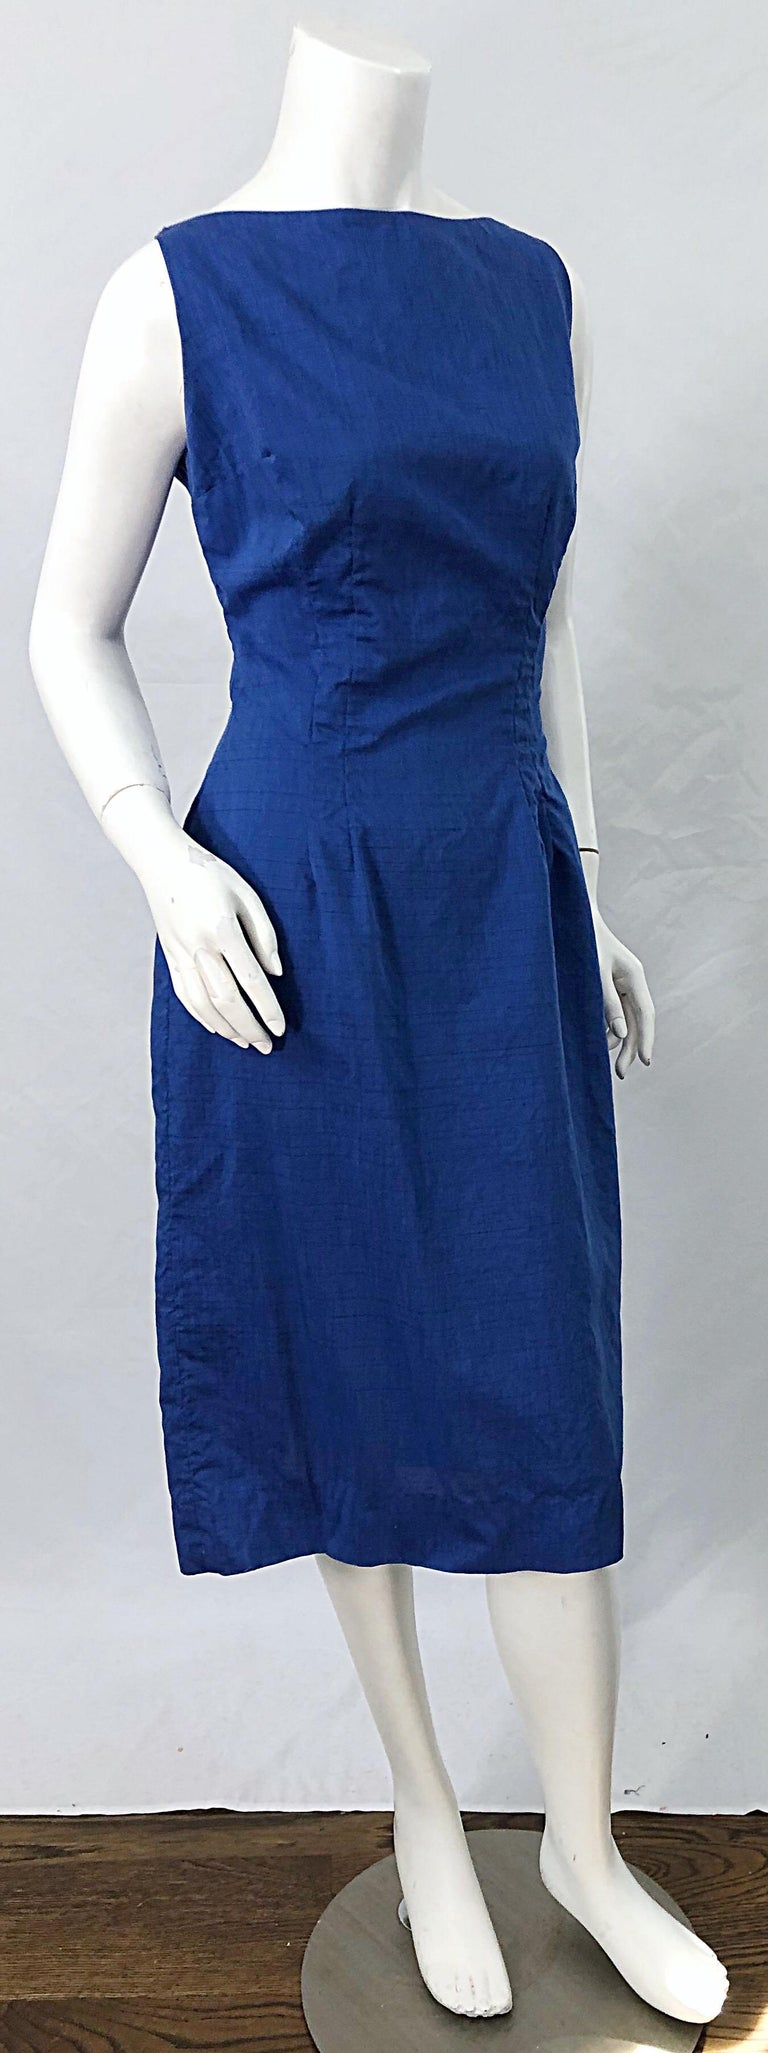 Chic 1950s Cobalt Blue Cotton High Neck Vintage 50s Sleeveless Wiggle Dress For Sale 7